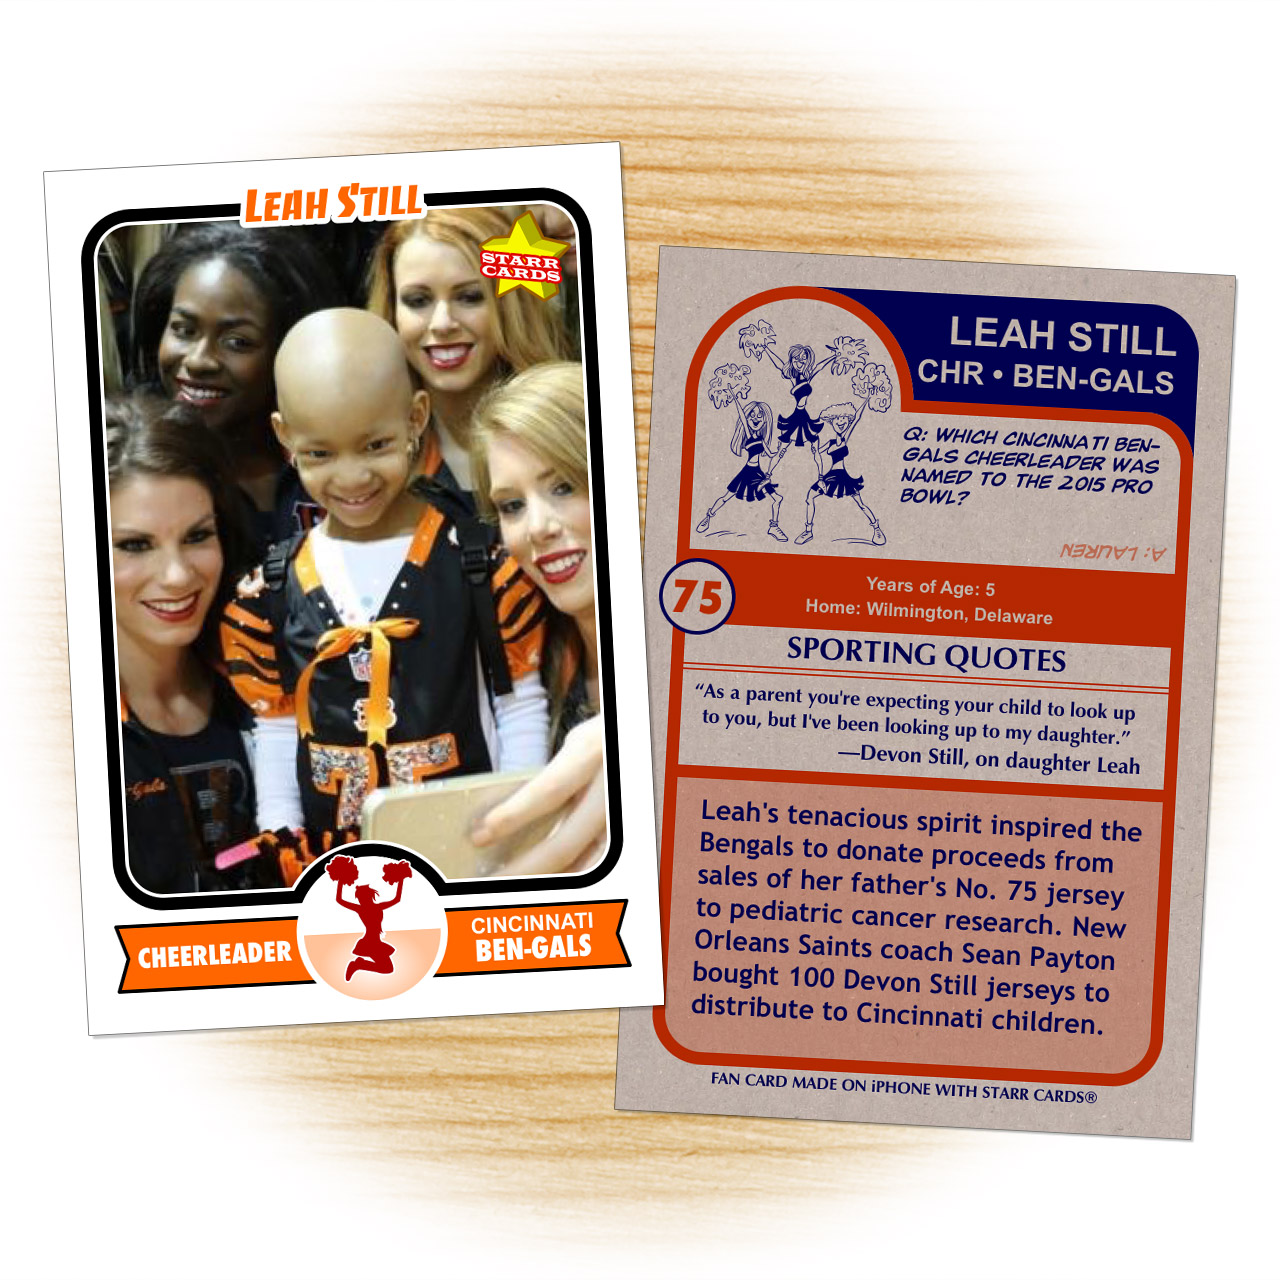 Leah Still get her own virtual Ben-Gals cheerleader trading card